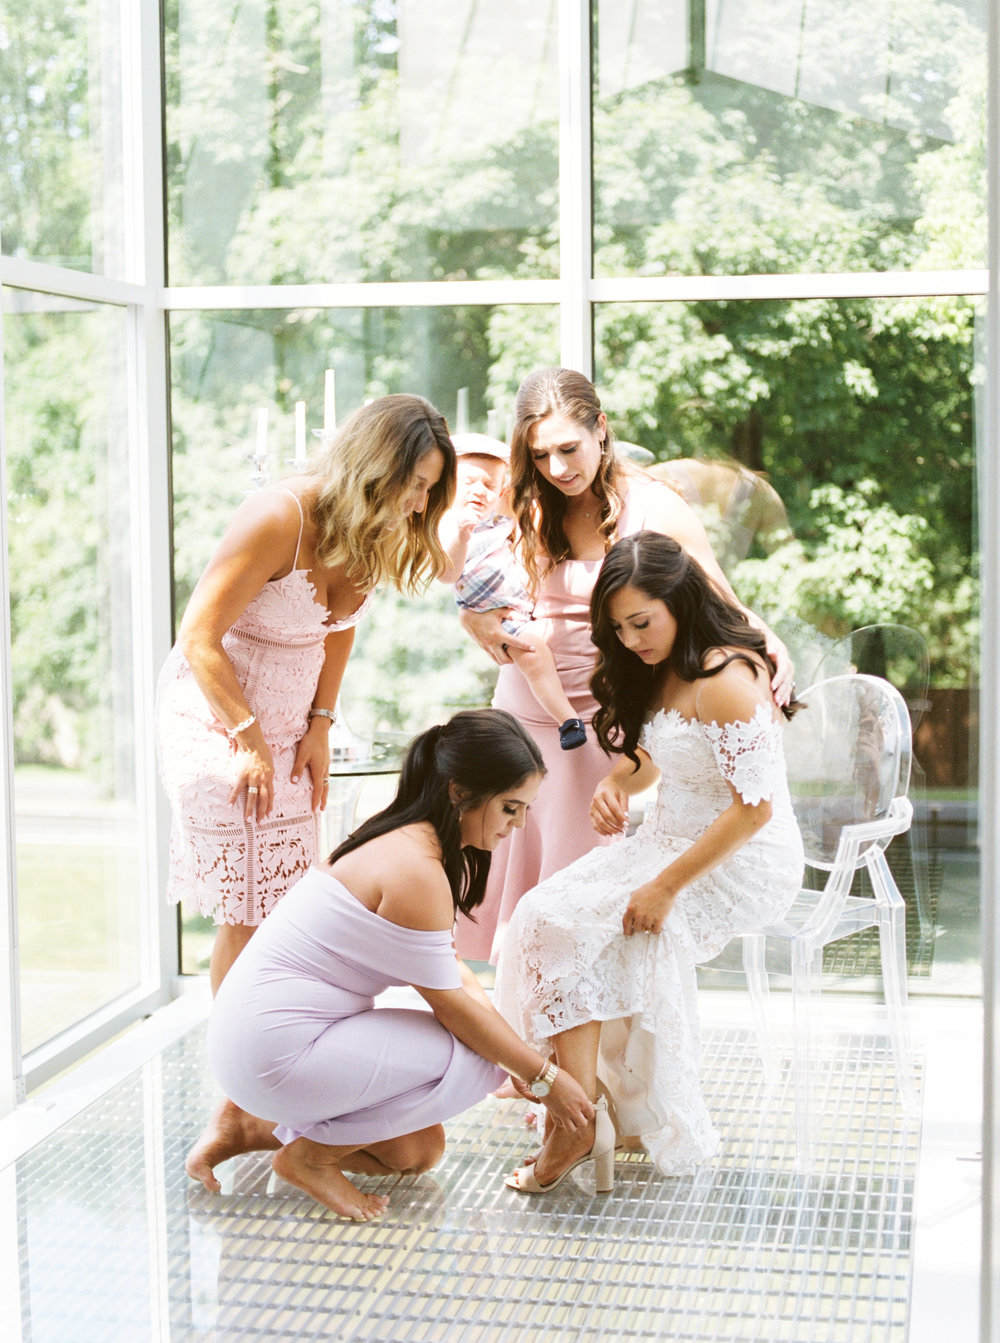 Lindsey's girls help her get ready in this light filled AirBnB before her modern and colorful wedding day at Hotel du Village.